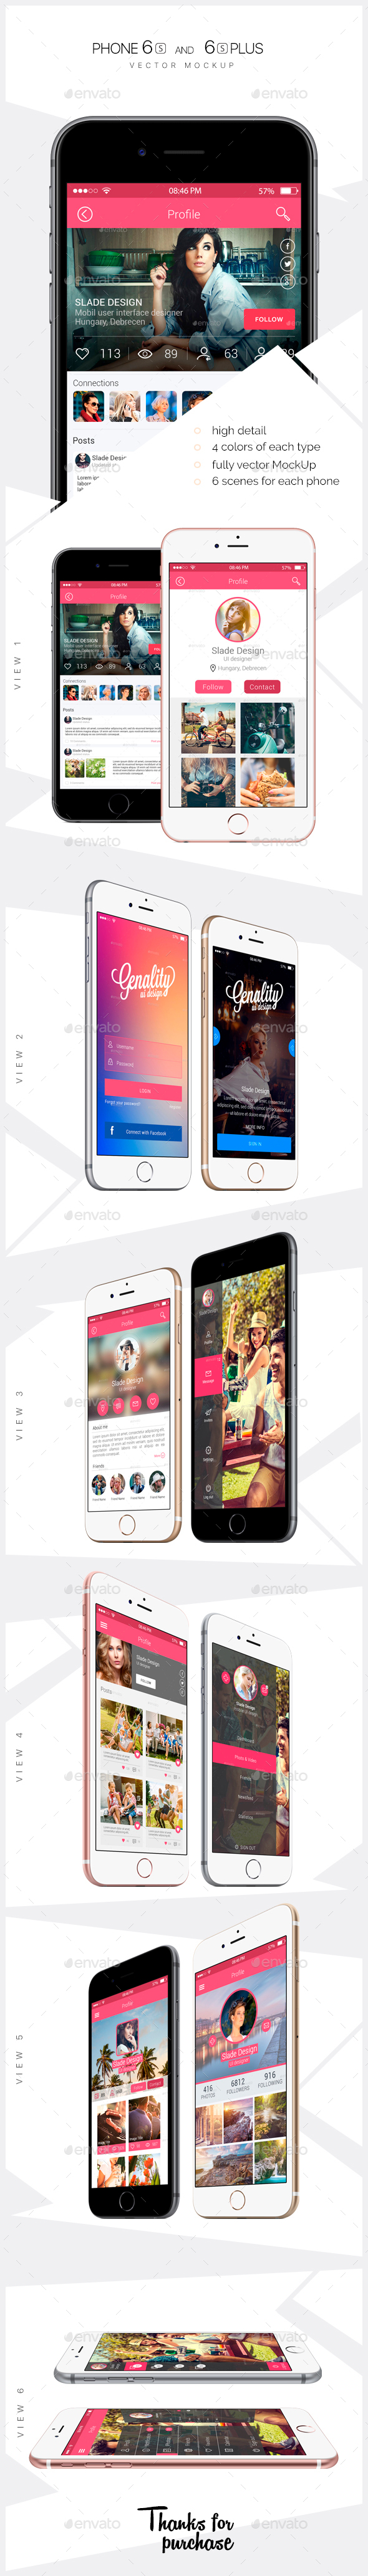 iPhone 6s and 6s Plus vector Mockups